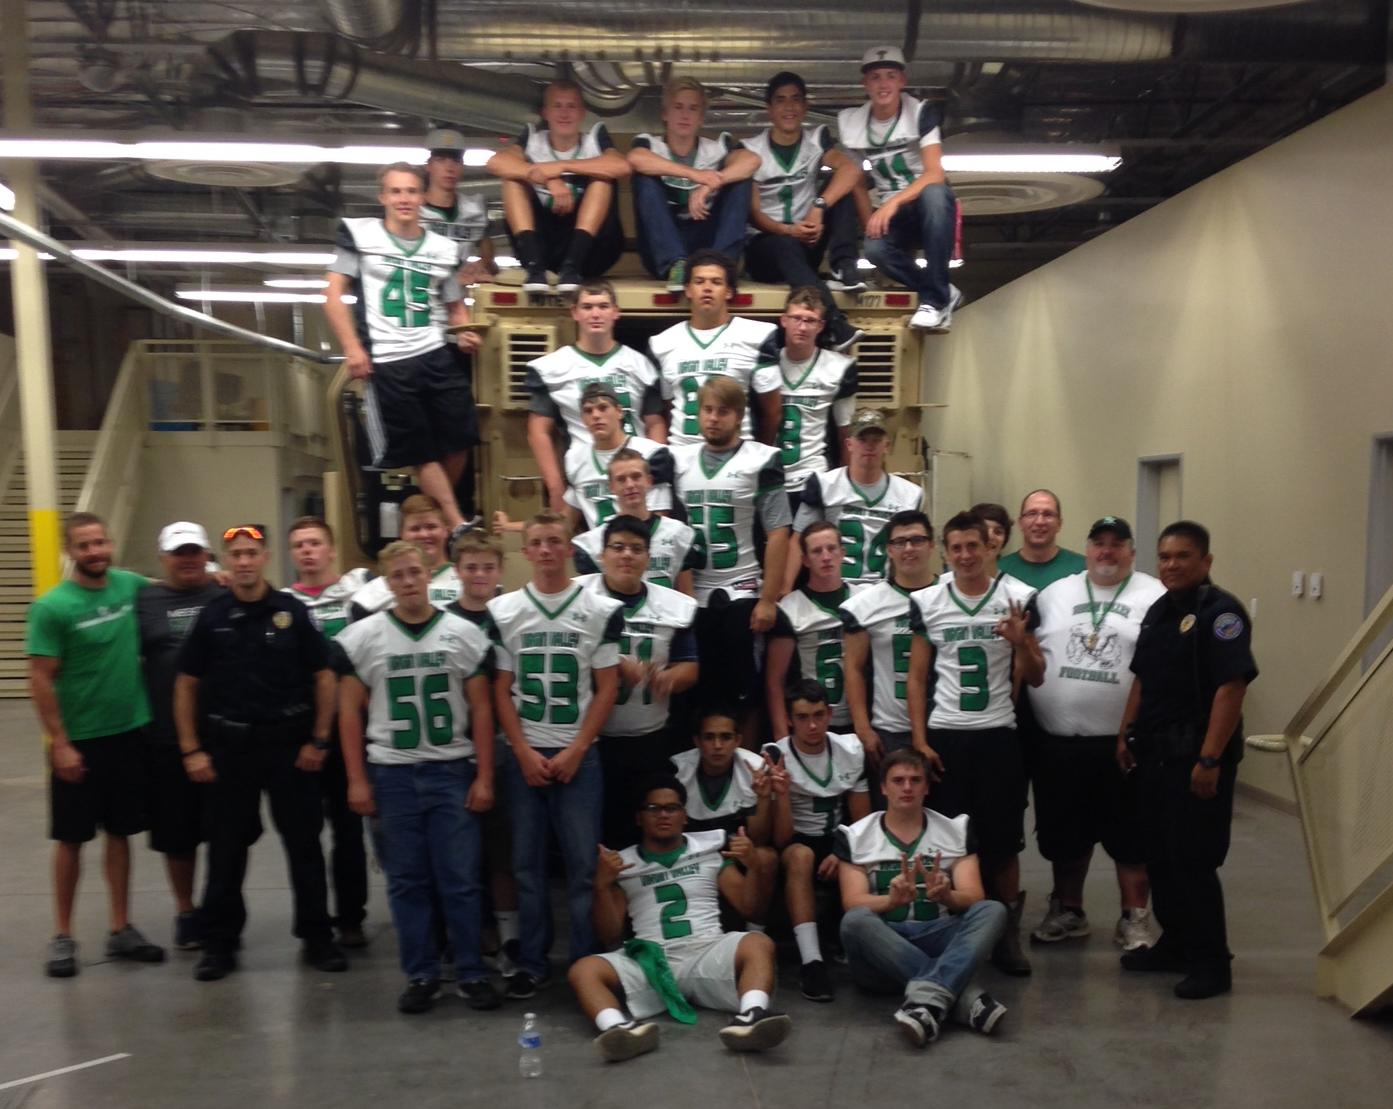 VVHS Football Team provides community services